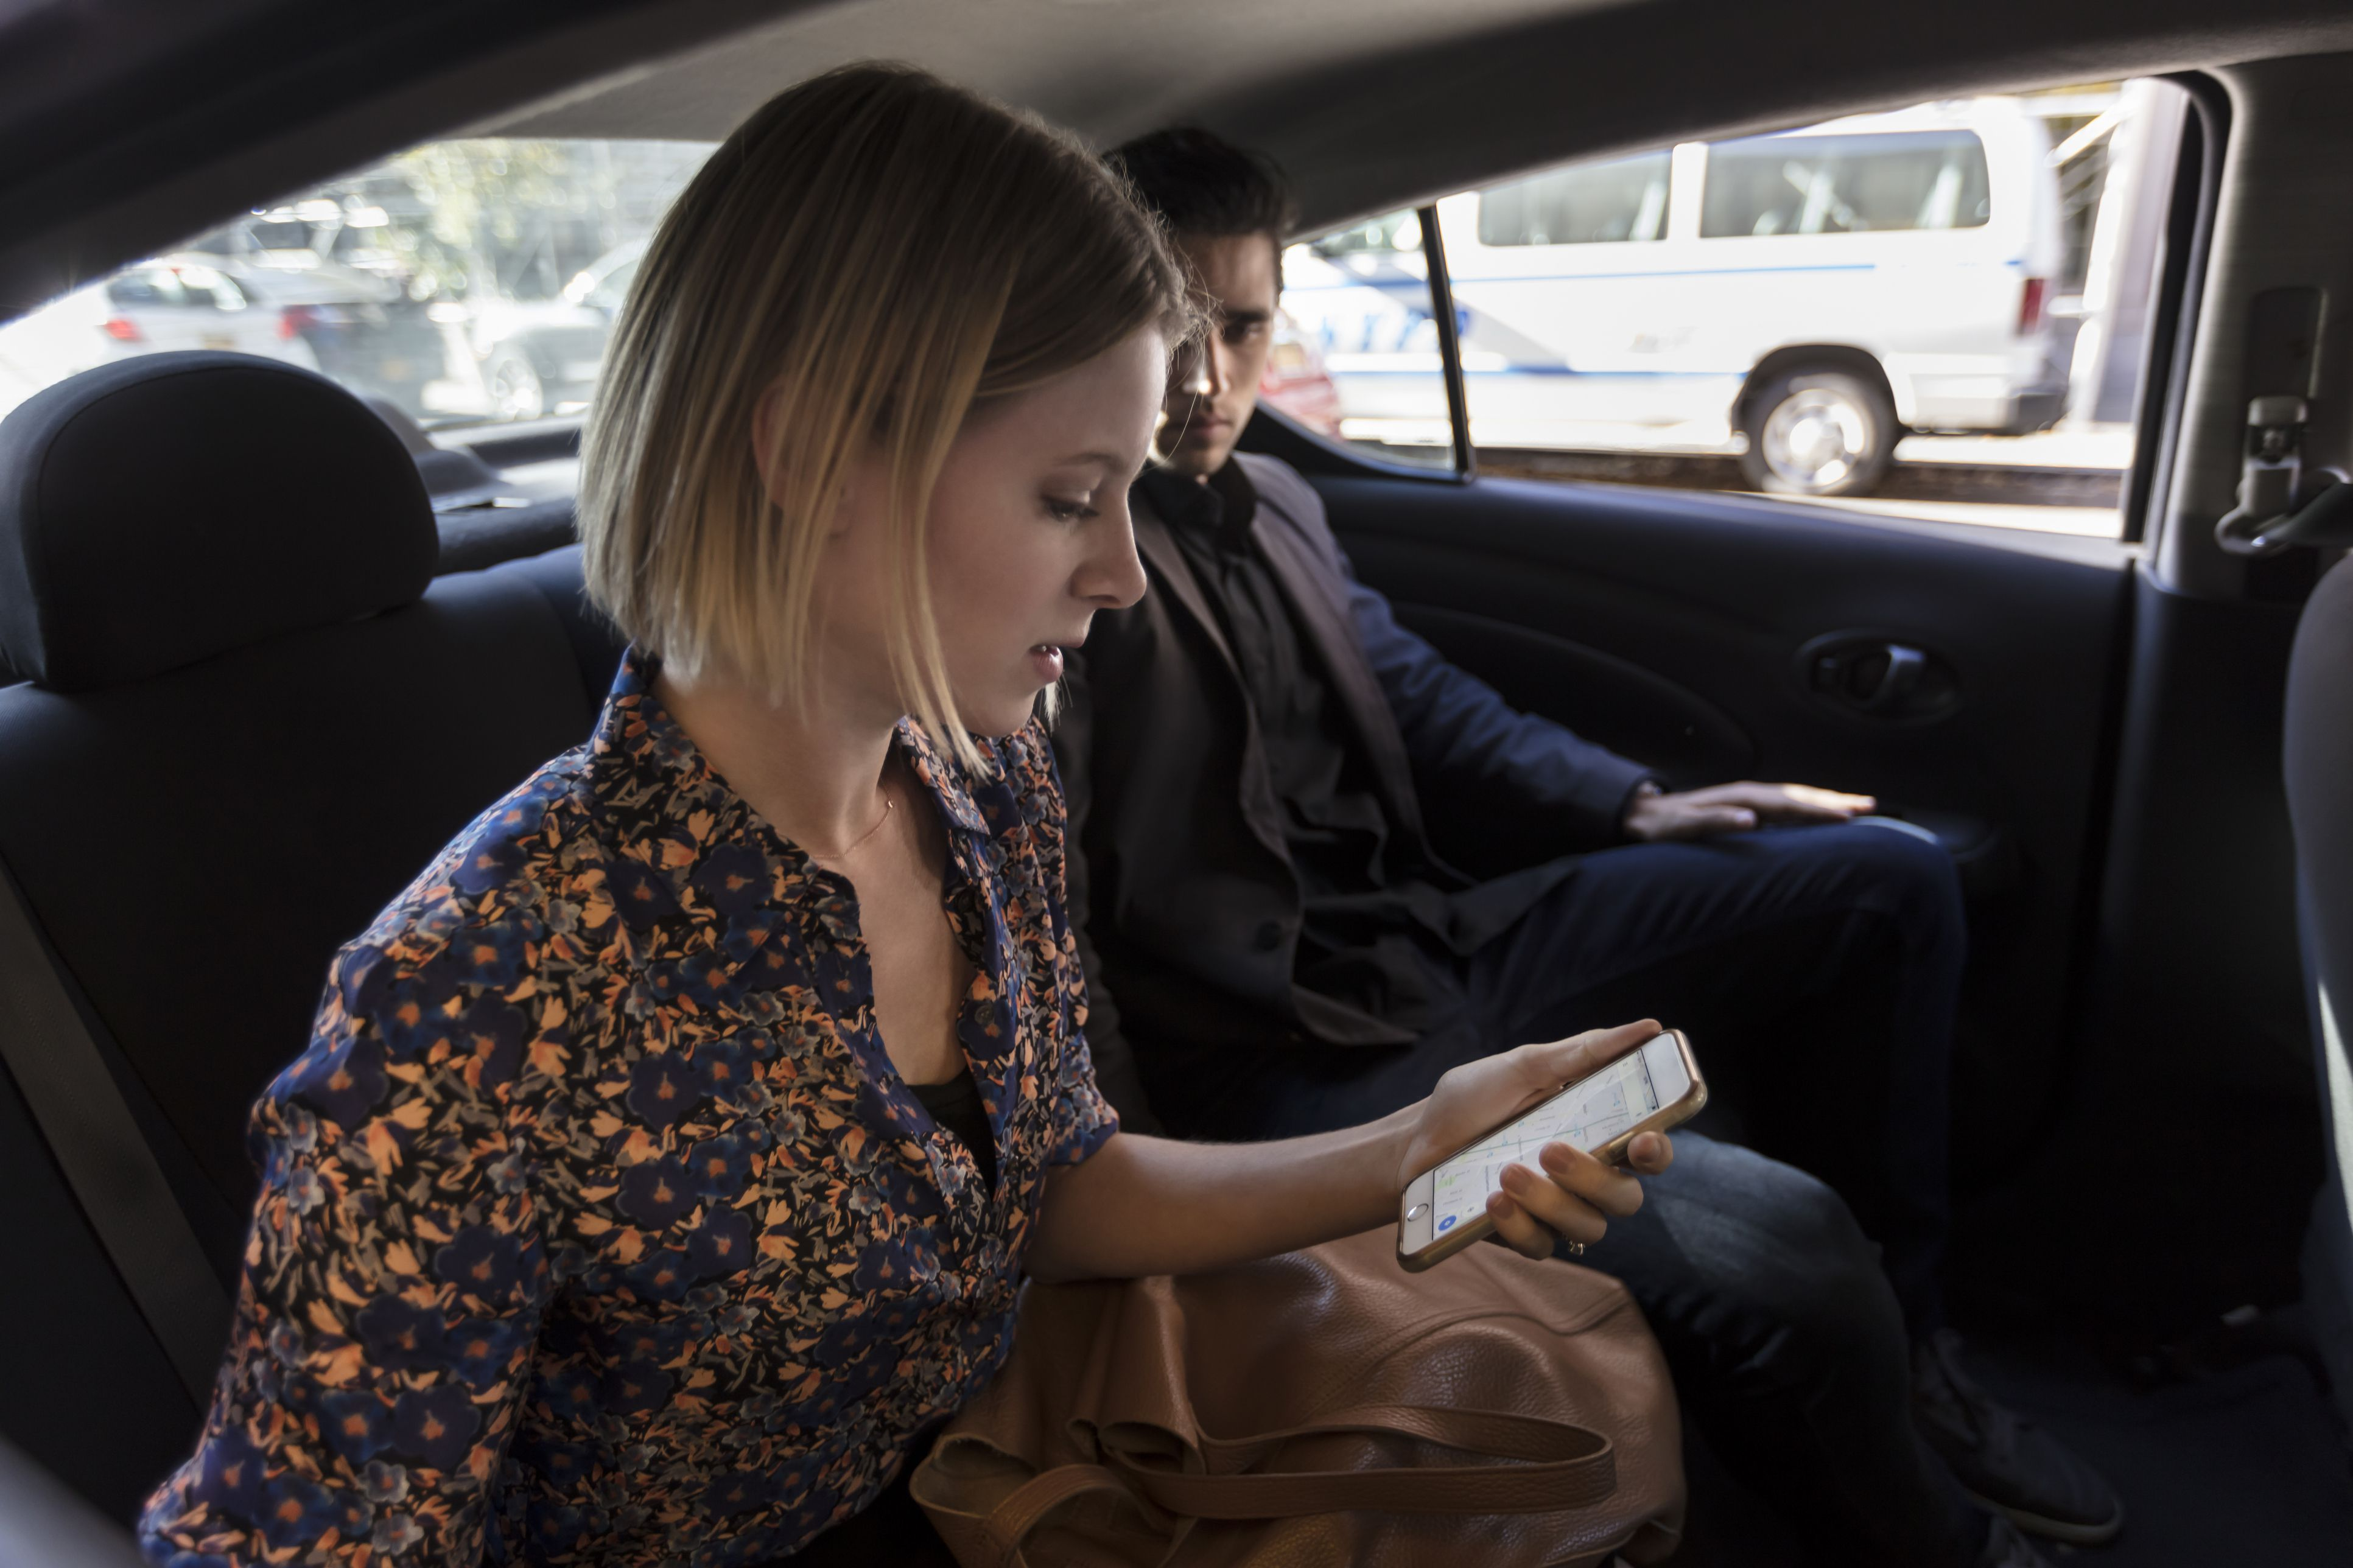 Man and woman sitting in car looking at phone